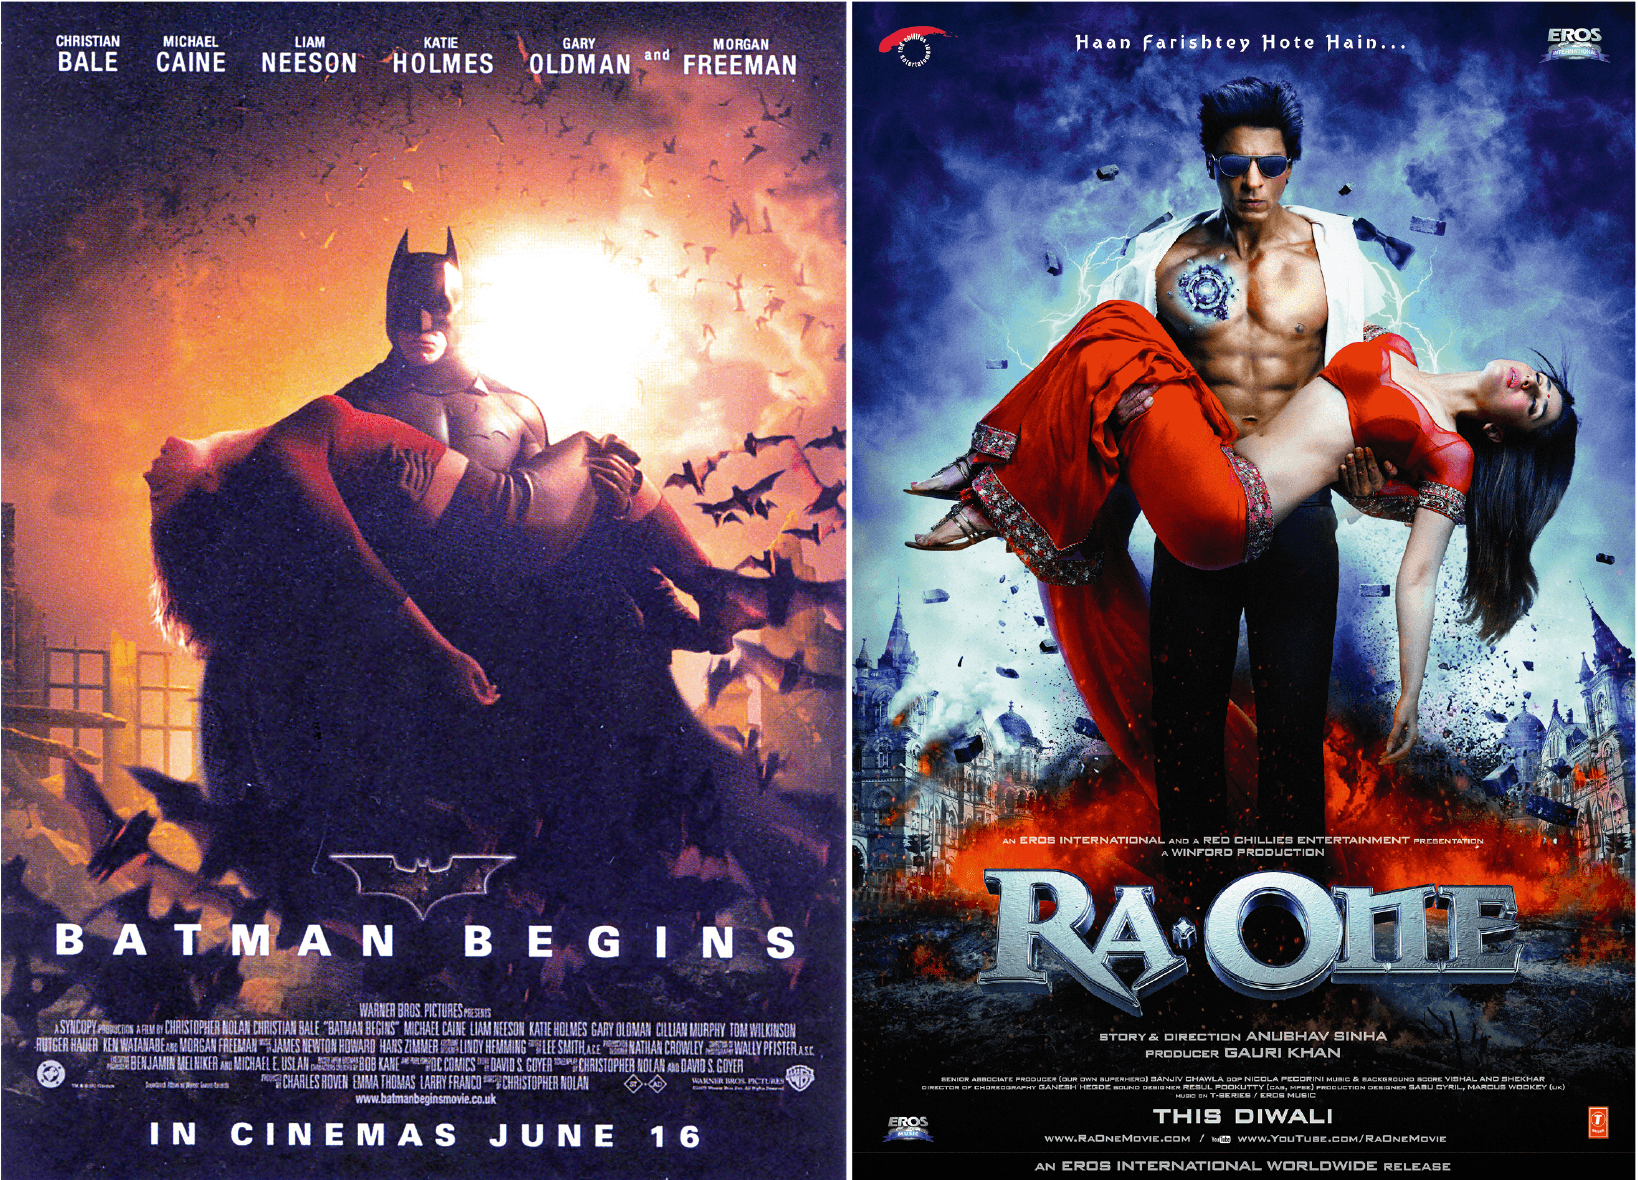 Hollywood and Bollywood twin movie posters: Batman Begins, by Christopher Nolan 2005  and Ra One, by Anubhav Sinha, 2011